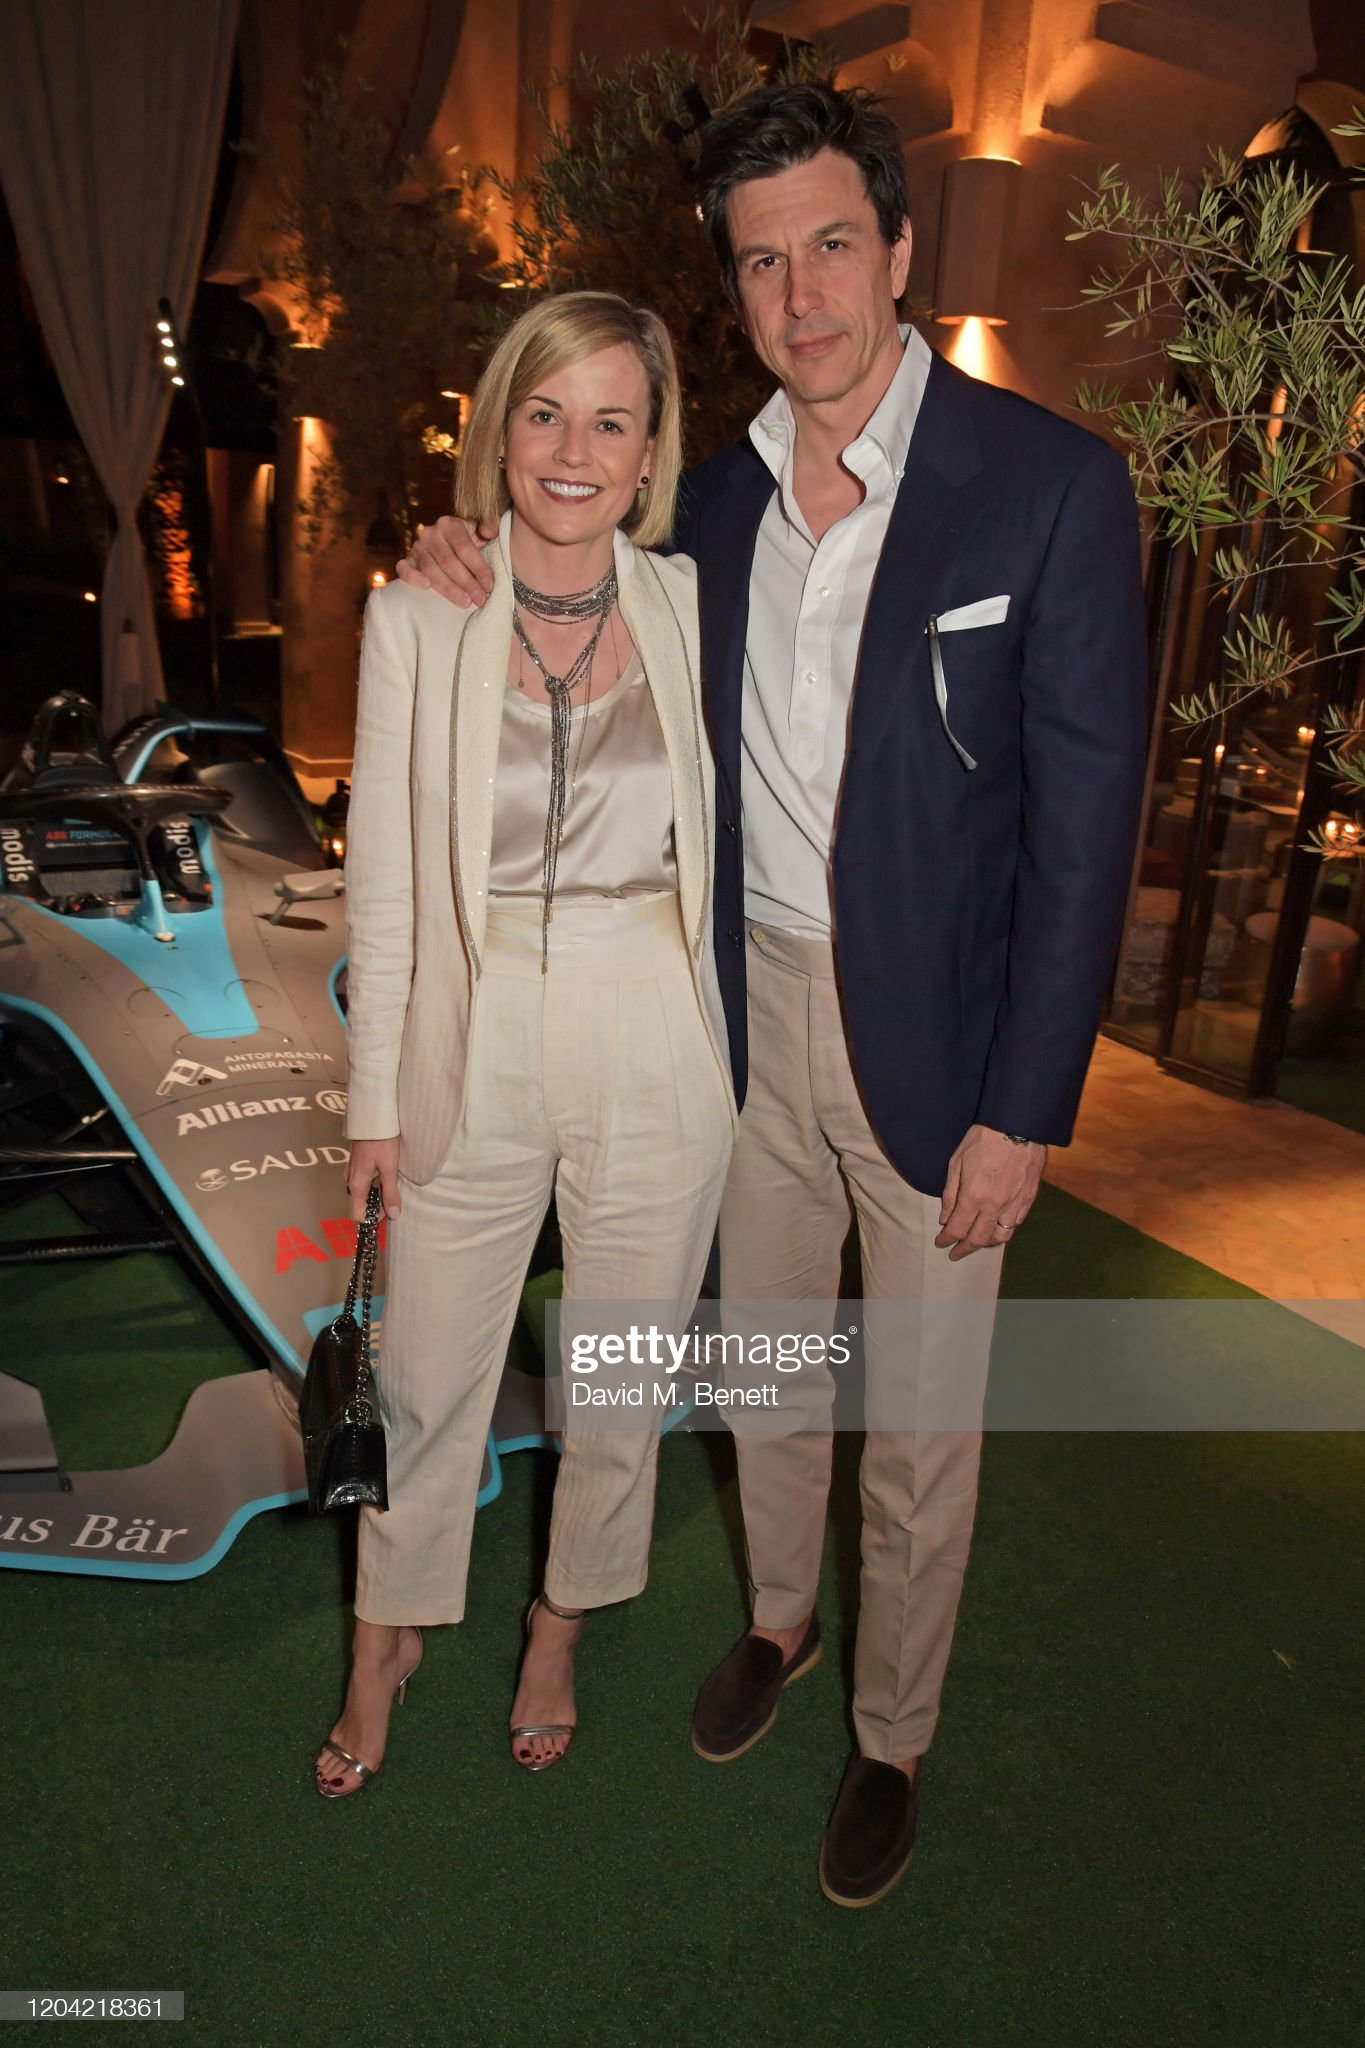 susie-wolff-and-toto-wolff-attend-the-ab